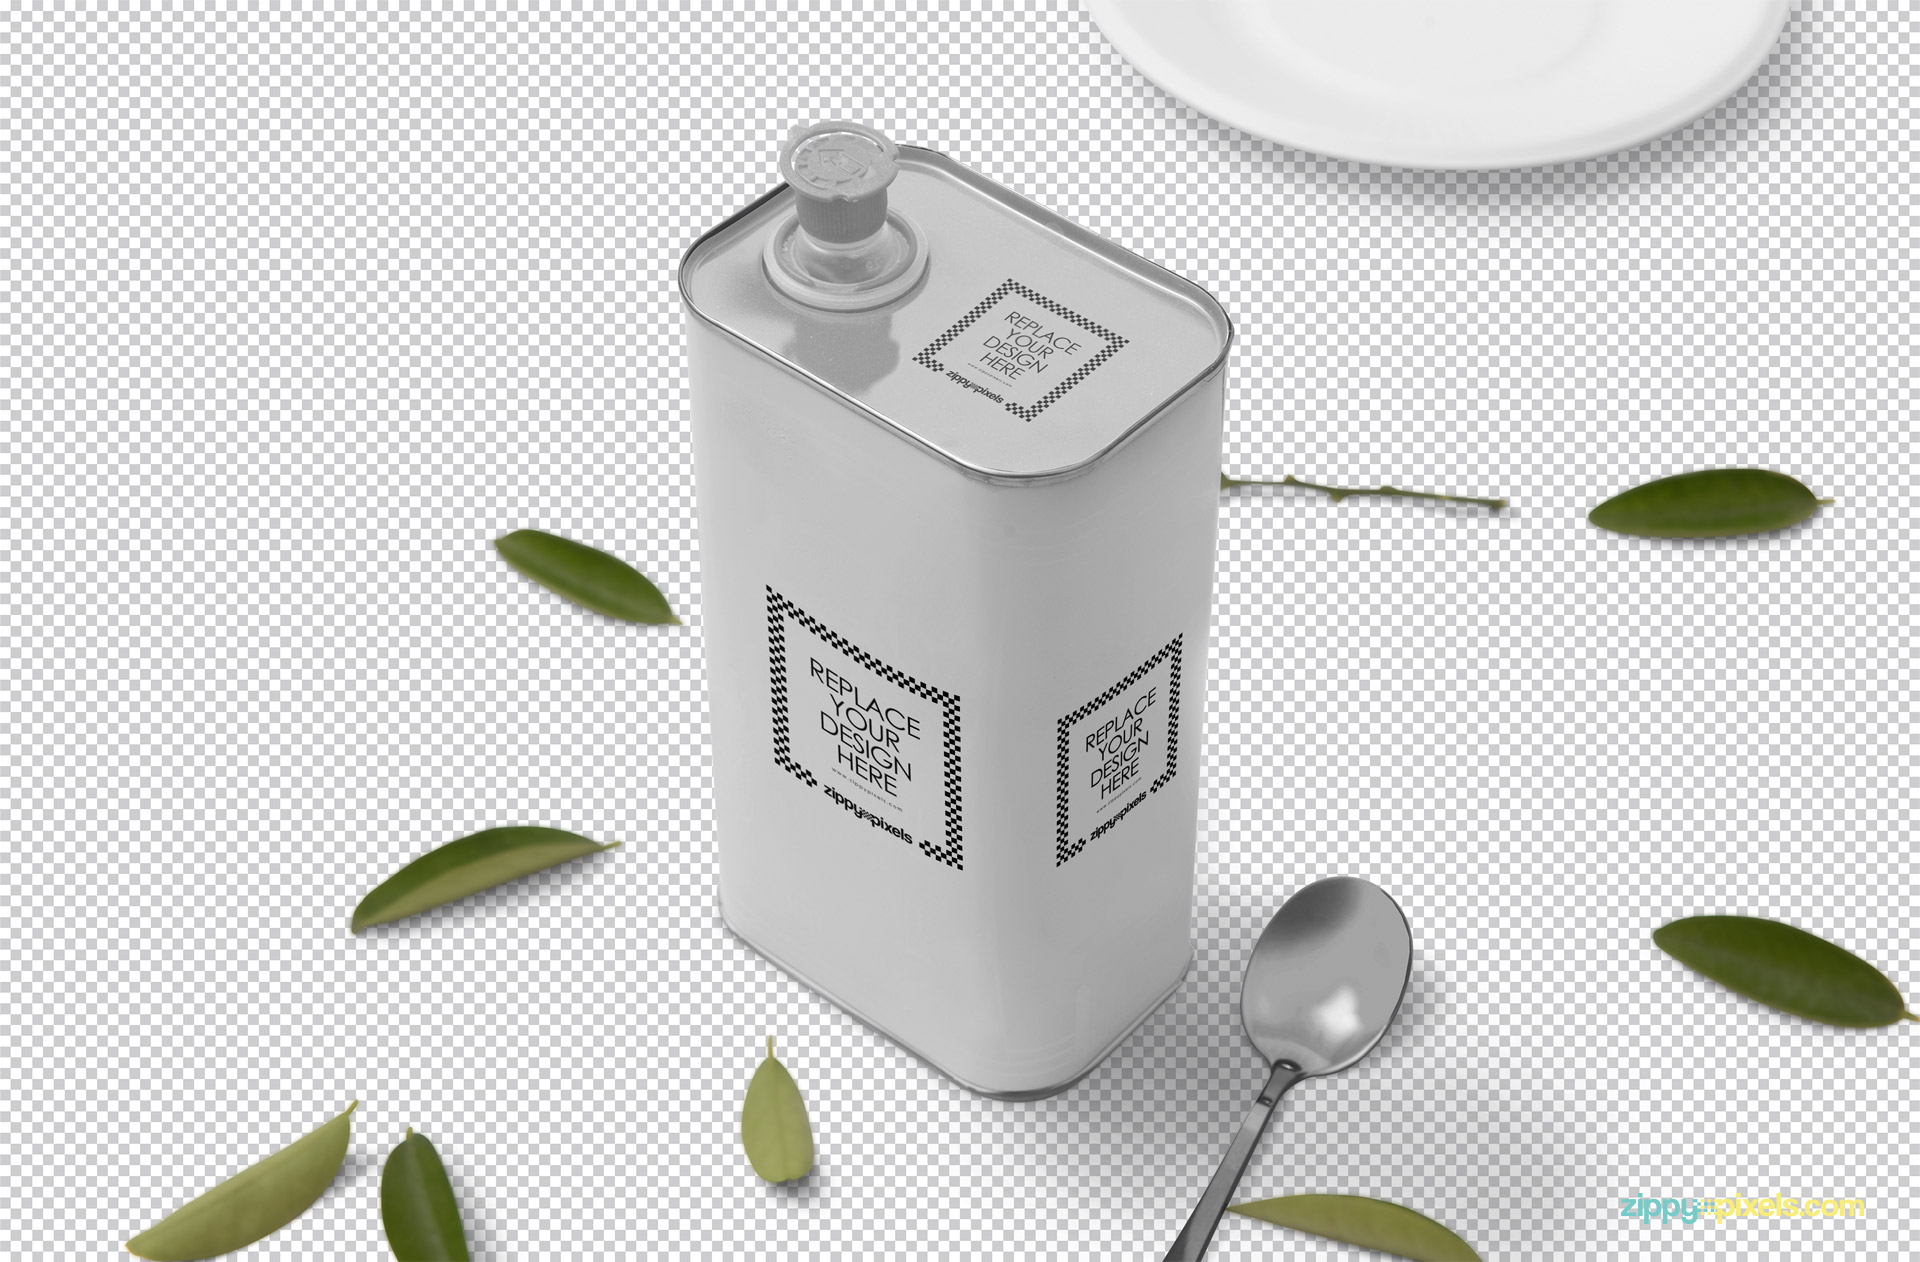 Editable PSD of tin can mockup showing replaceable design option.